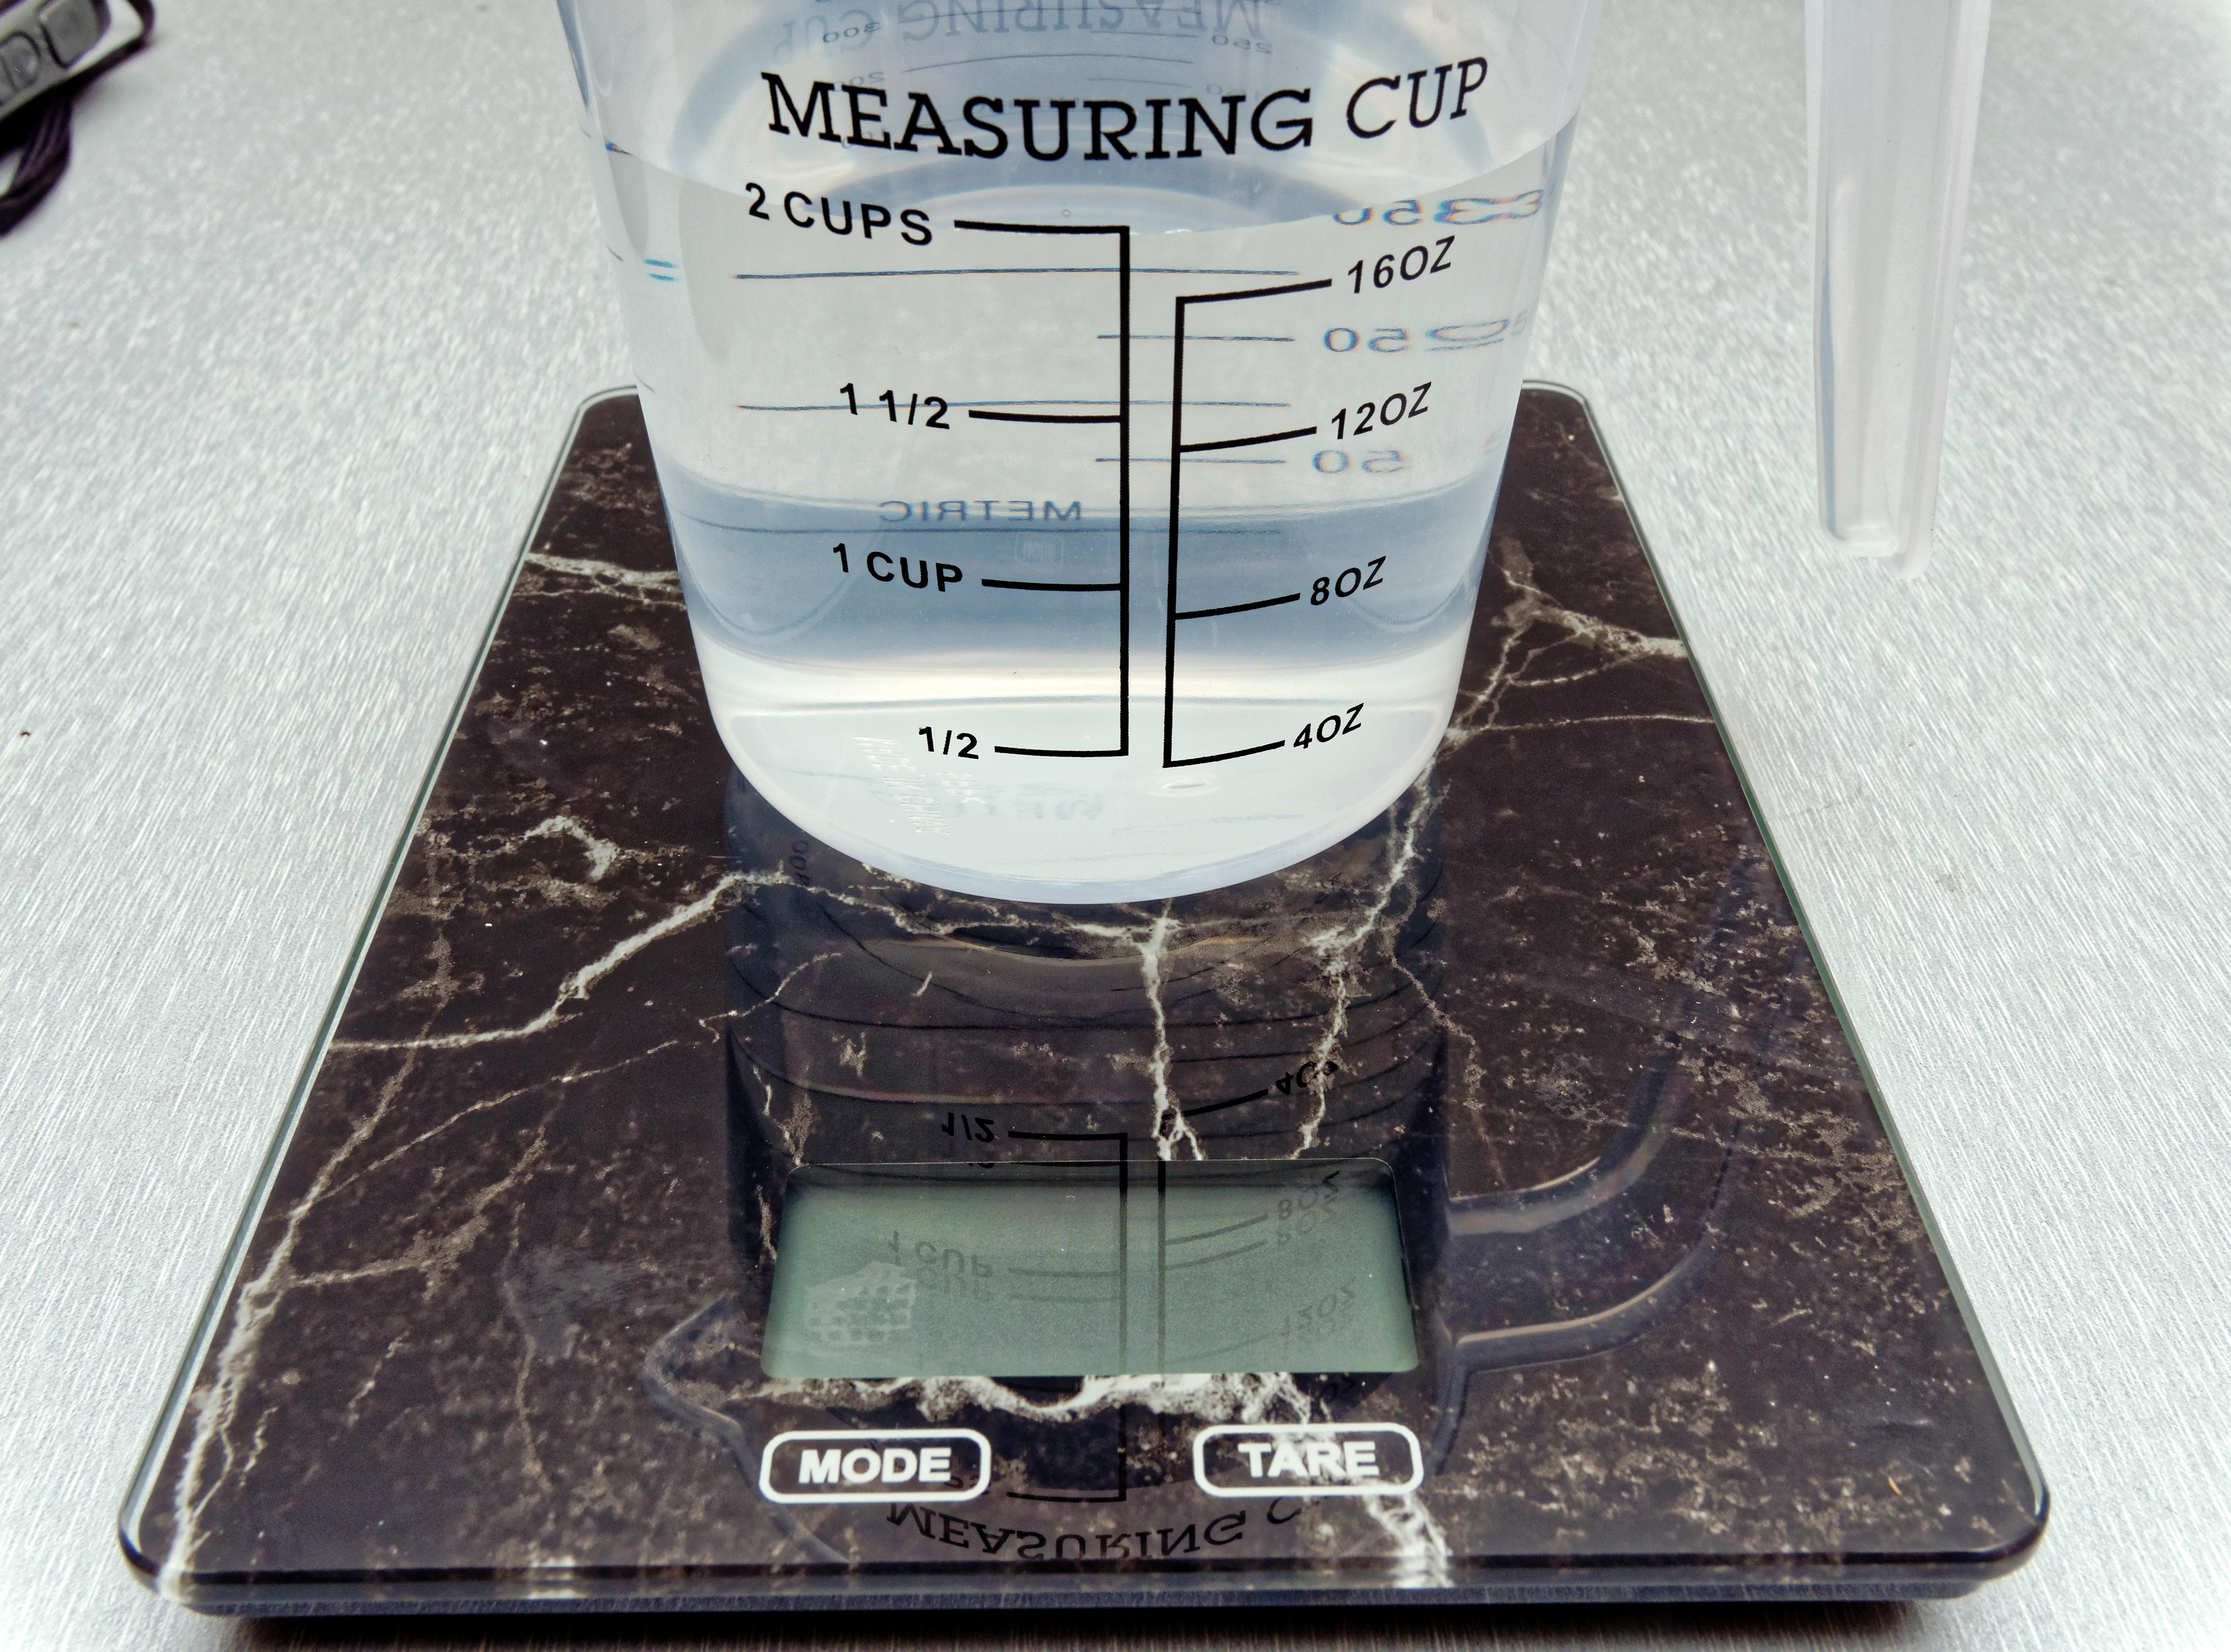 This should be Measuring-cup-3.jpeg.  Is it missing?